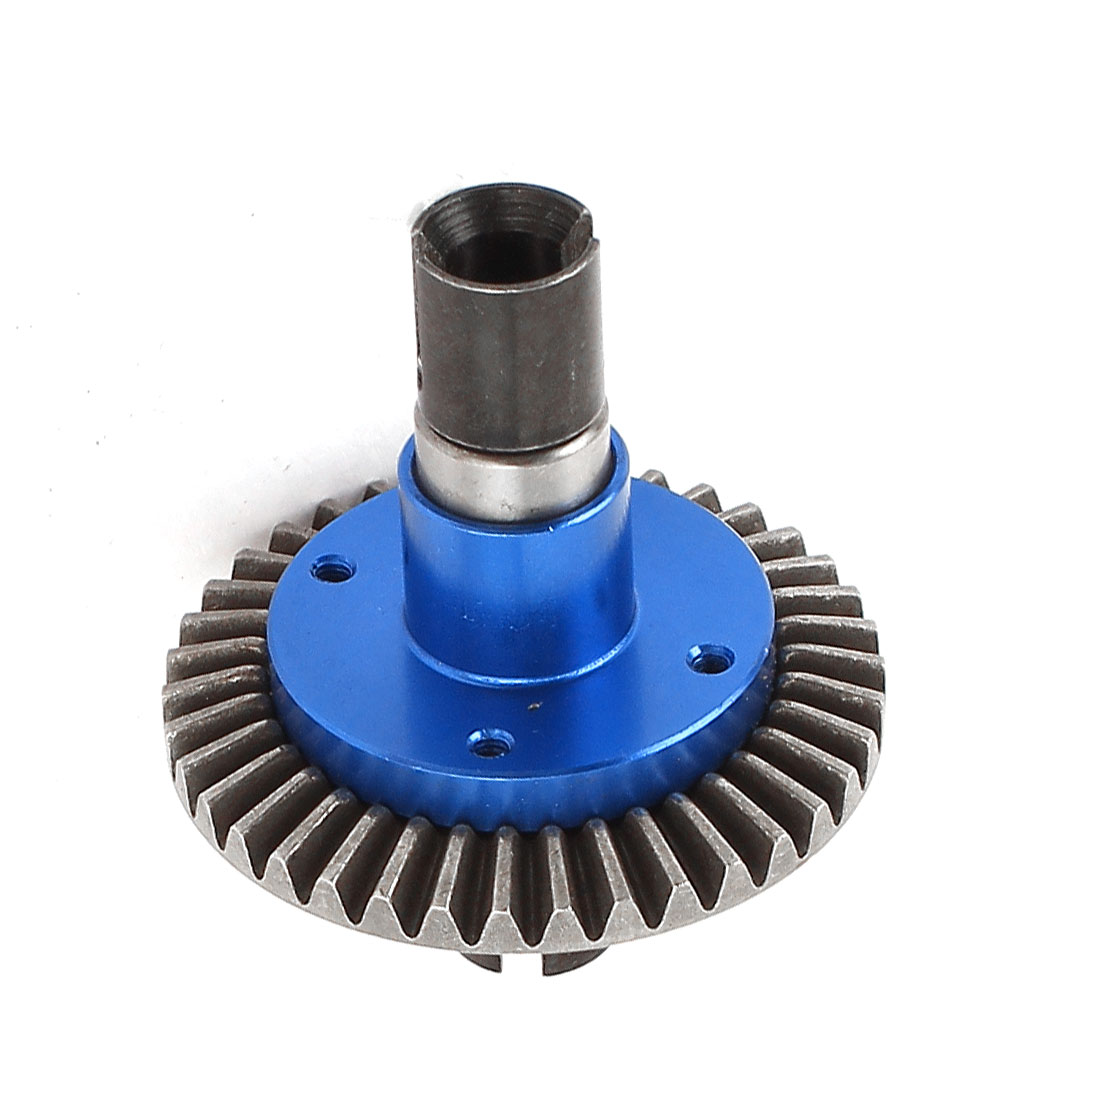 Differential One Way Gear 38T for RC 1/10 94123 Electric Drift On Road Car